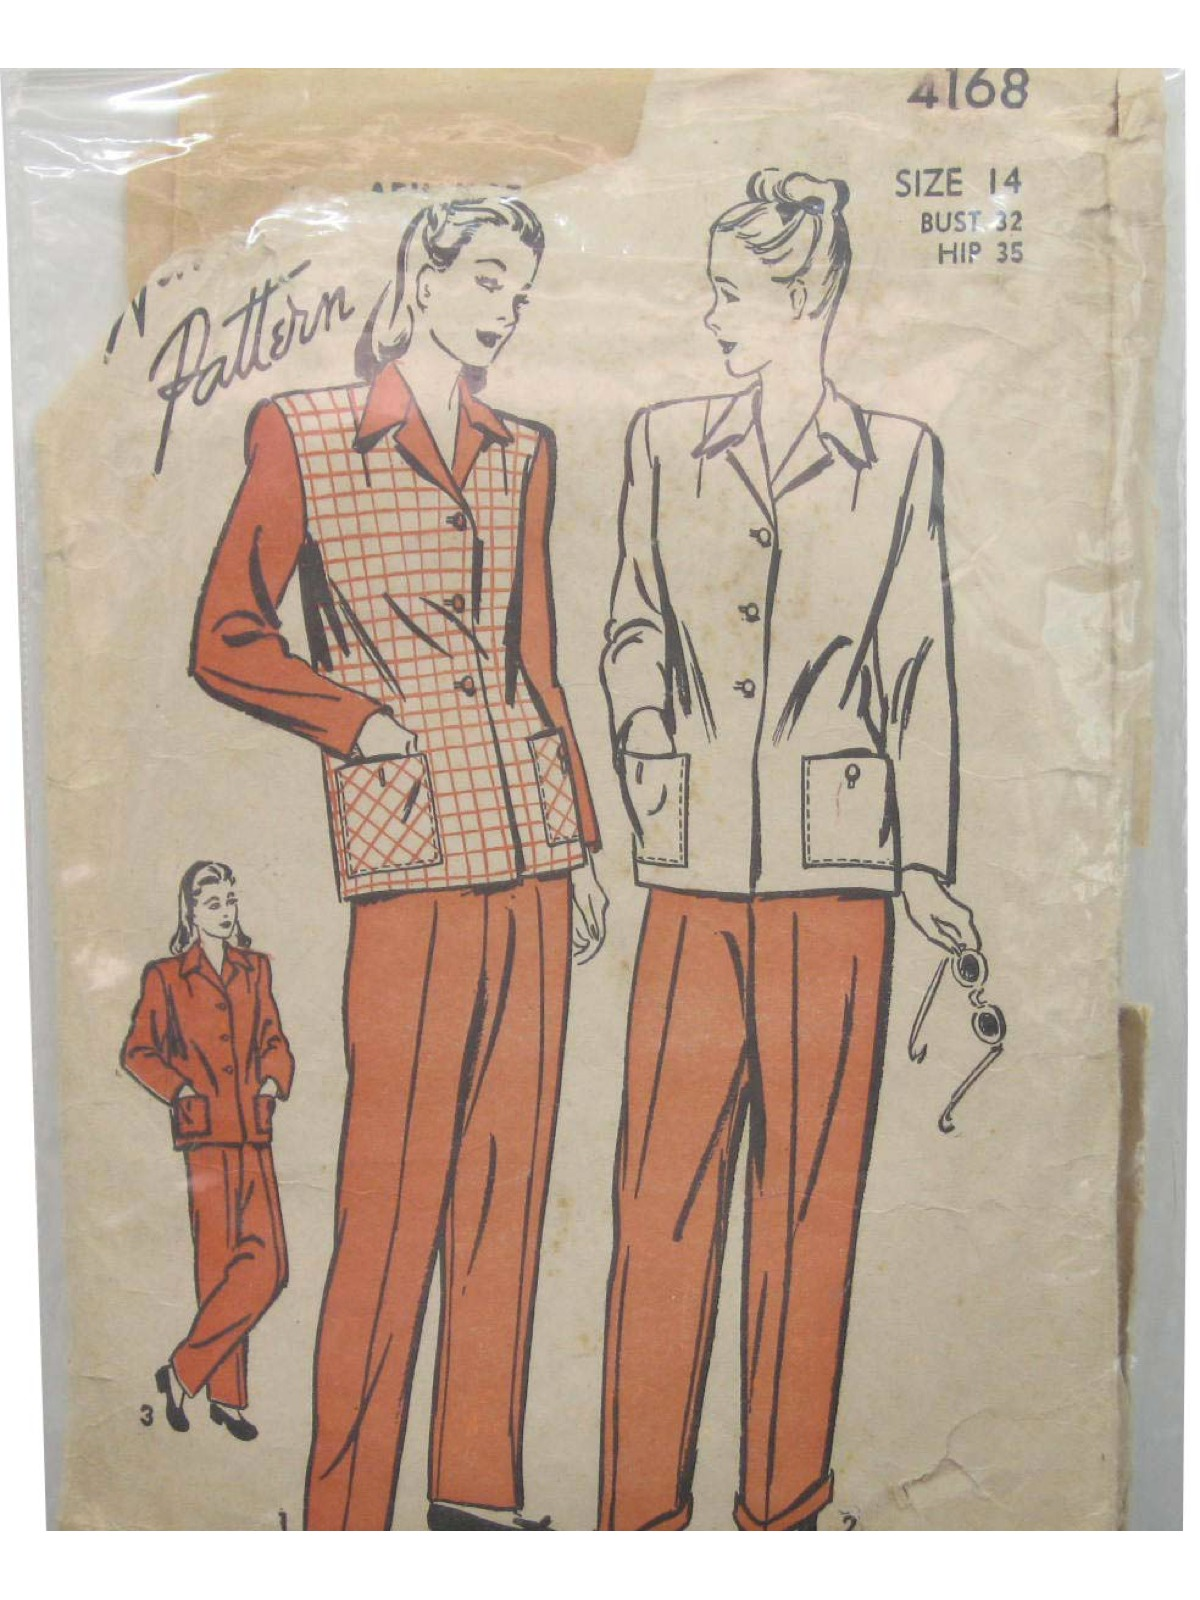 1930s vintage advance pattern no 4168 sewing pattern 30s 1930s vintage advance pattern no 4168 sewing pattern 30s advance pattern no 4168 womens vest or with set in longsleeves jacket having front button jeuxipadfo Choice Image